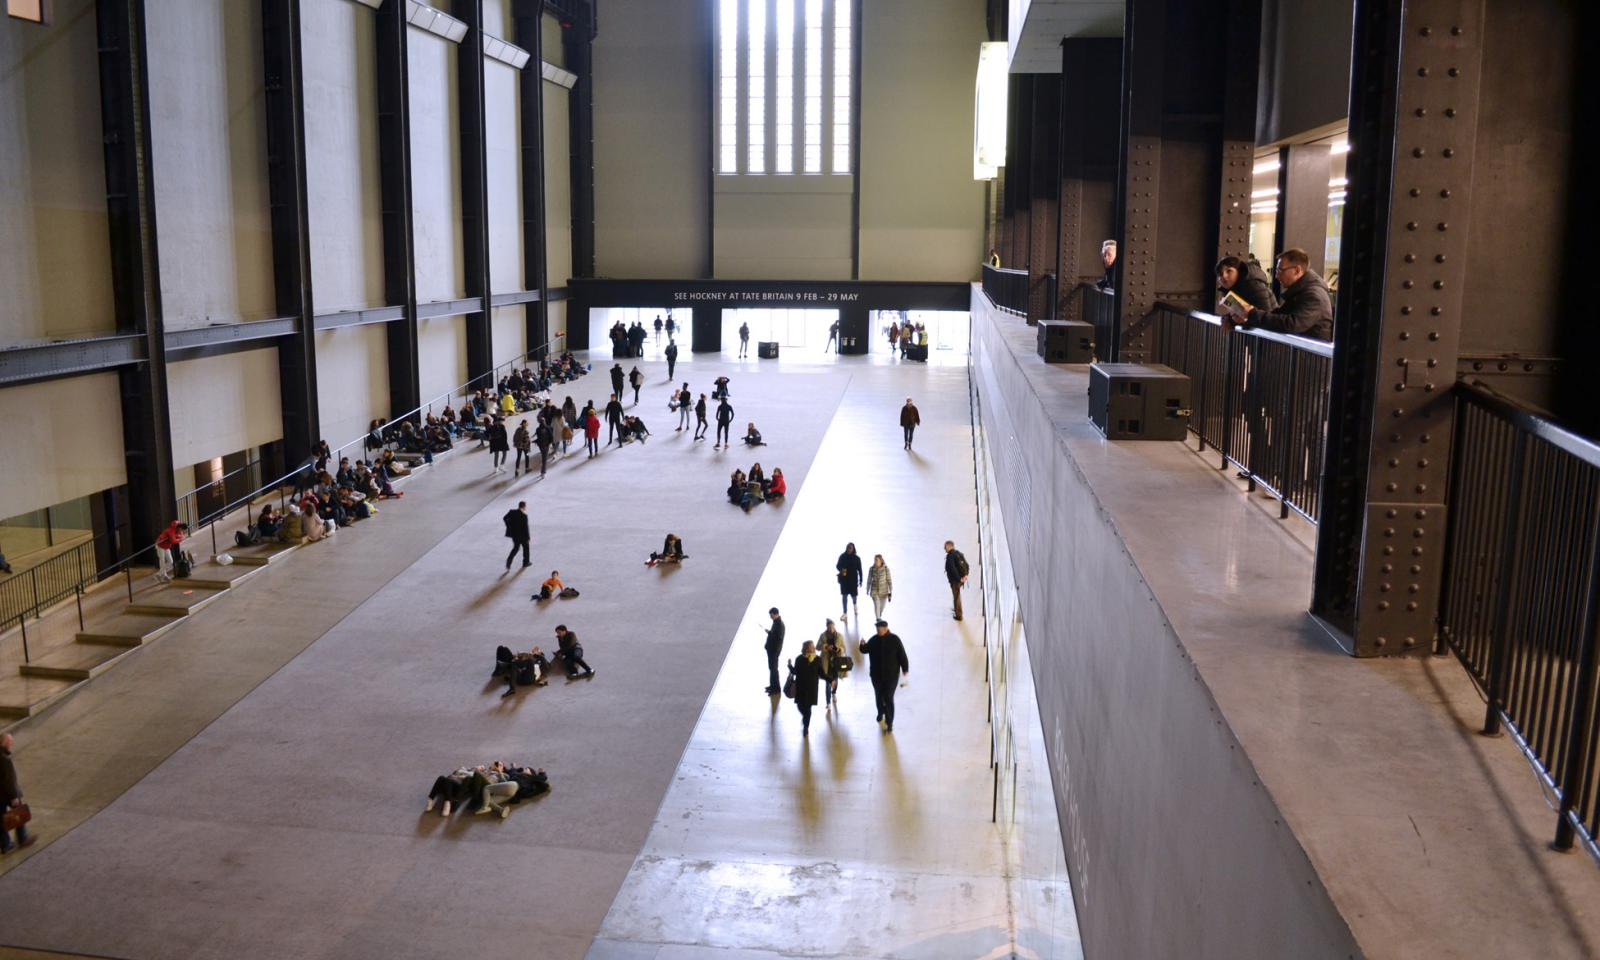 South Bank London - Tate Modern Gallery